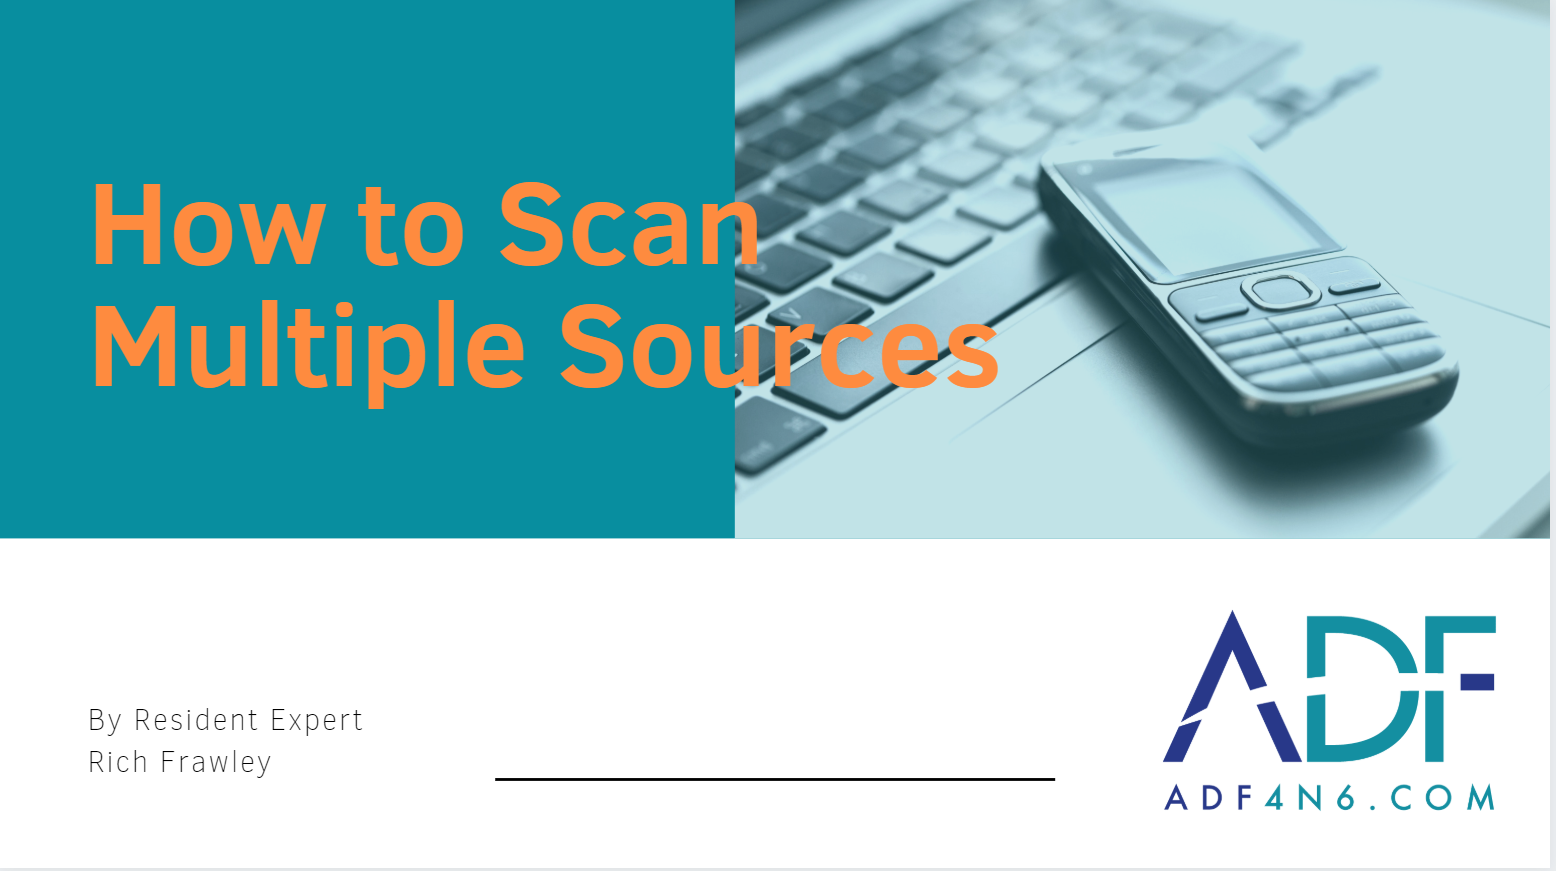 How to Scan Multiple Devices